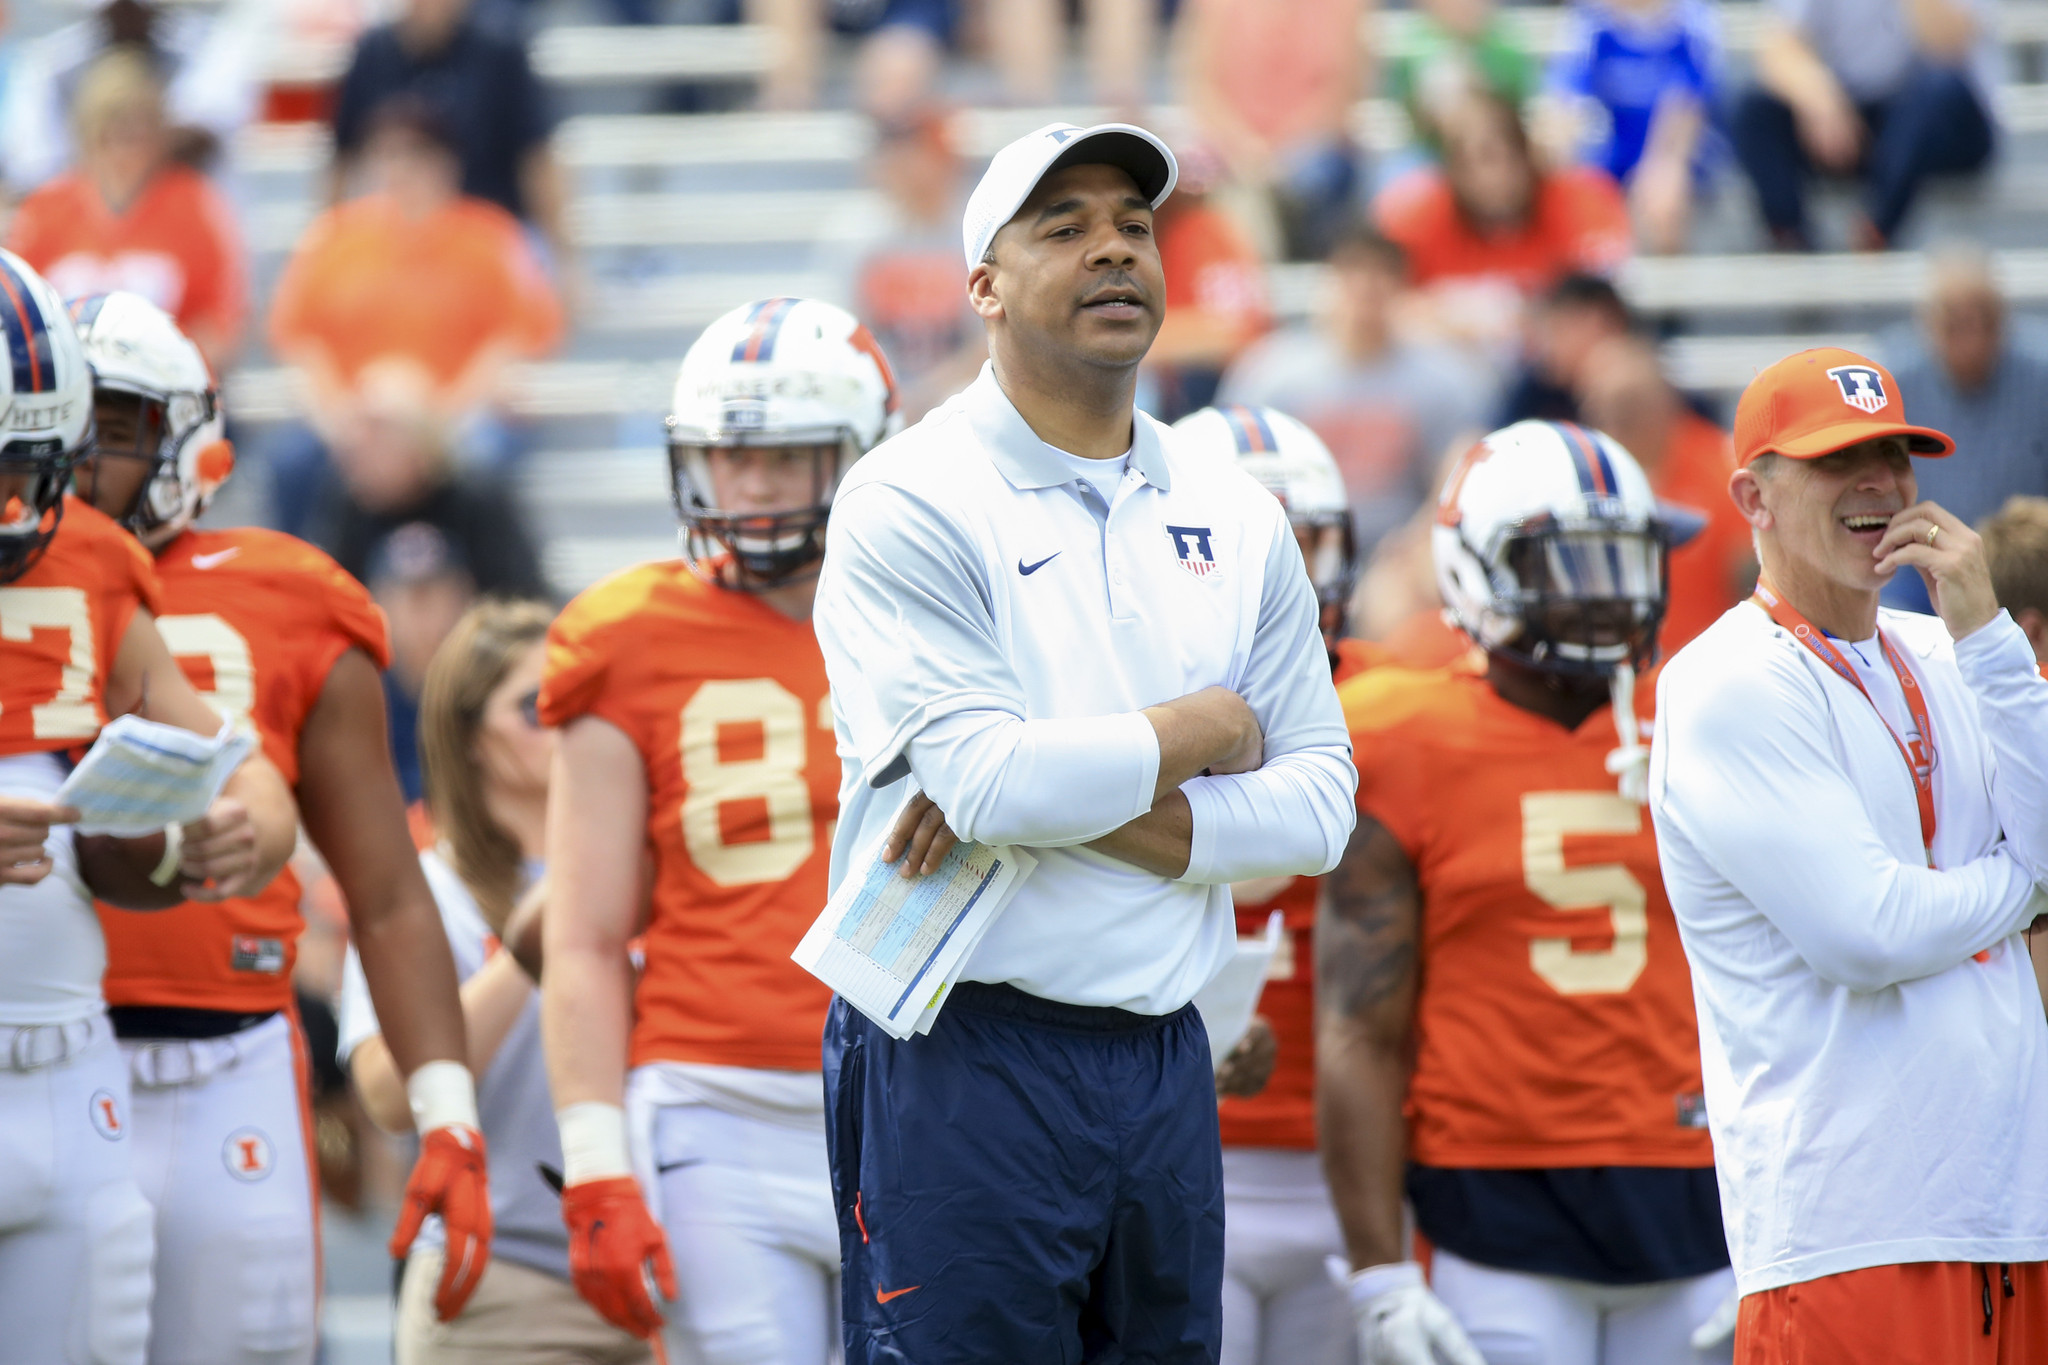 Ct-illinois-northwestern-coaching-connections-spt-0424-20160422